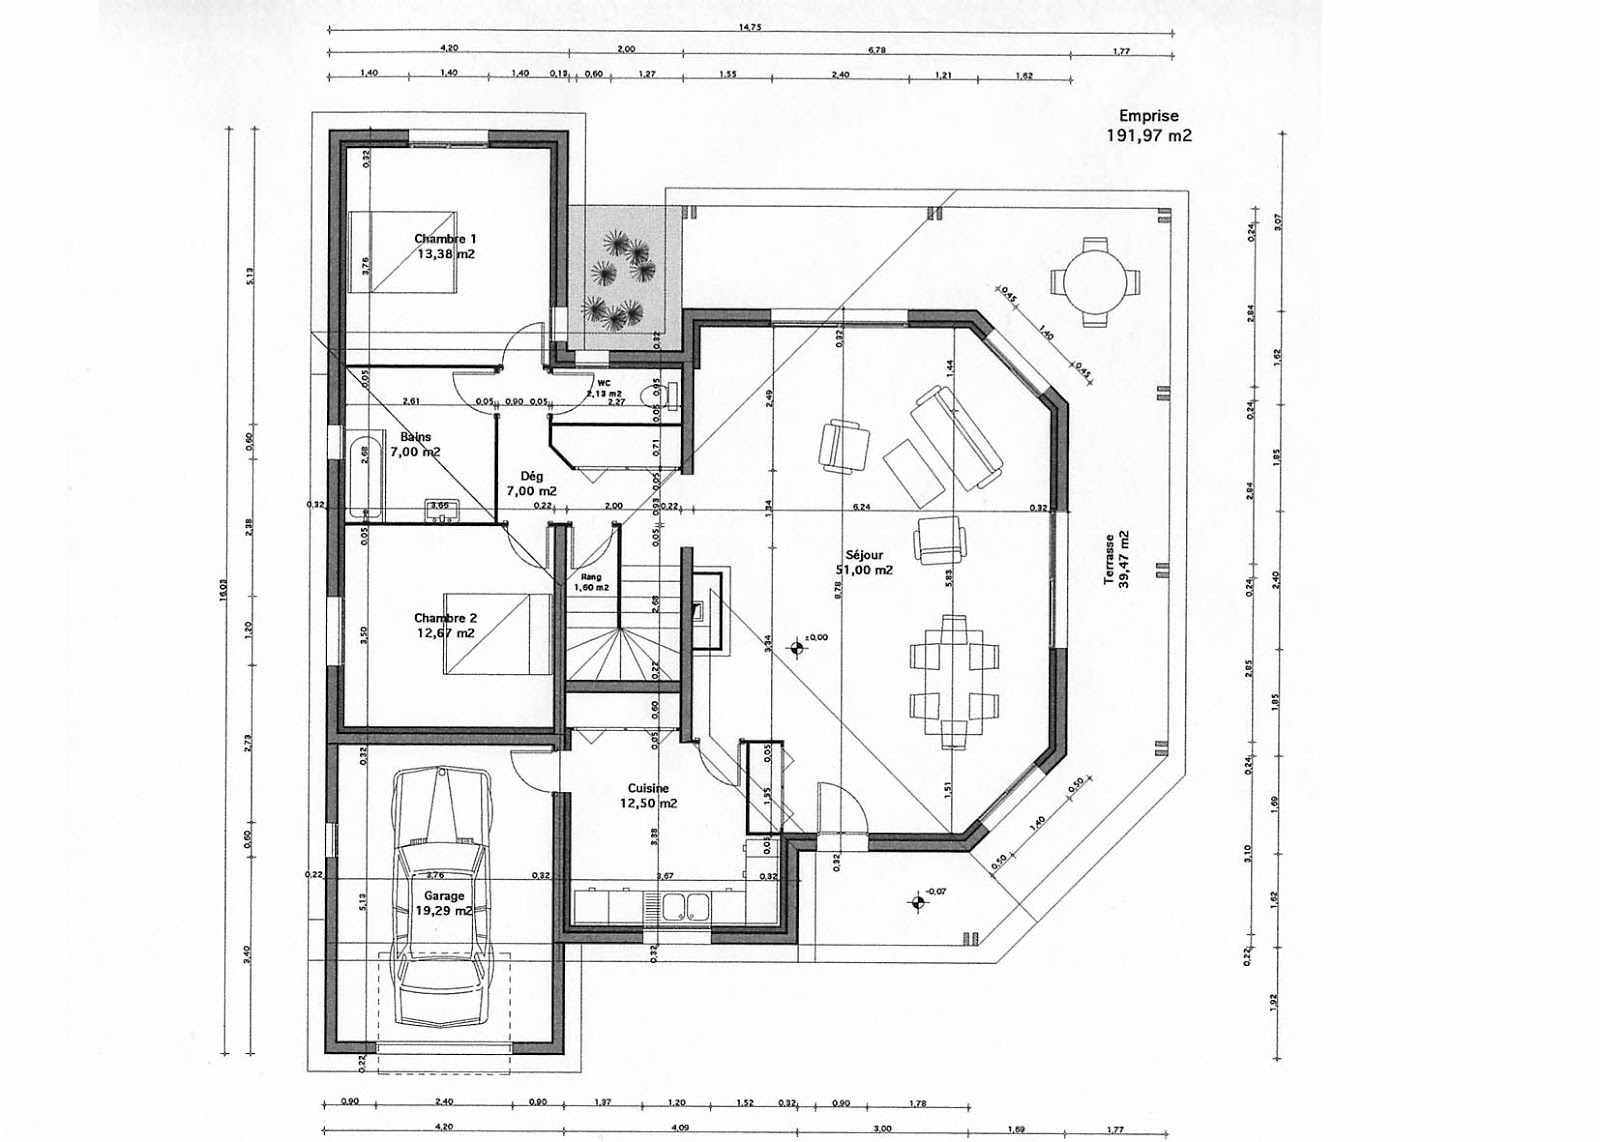 Plans et photos de maisons modernes for Plan de maison moderne au cameroun